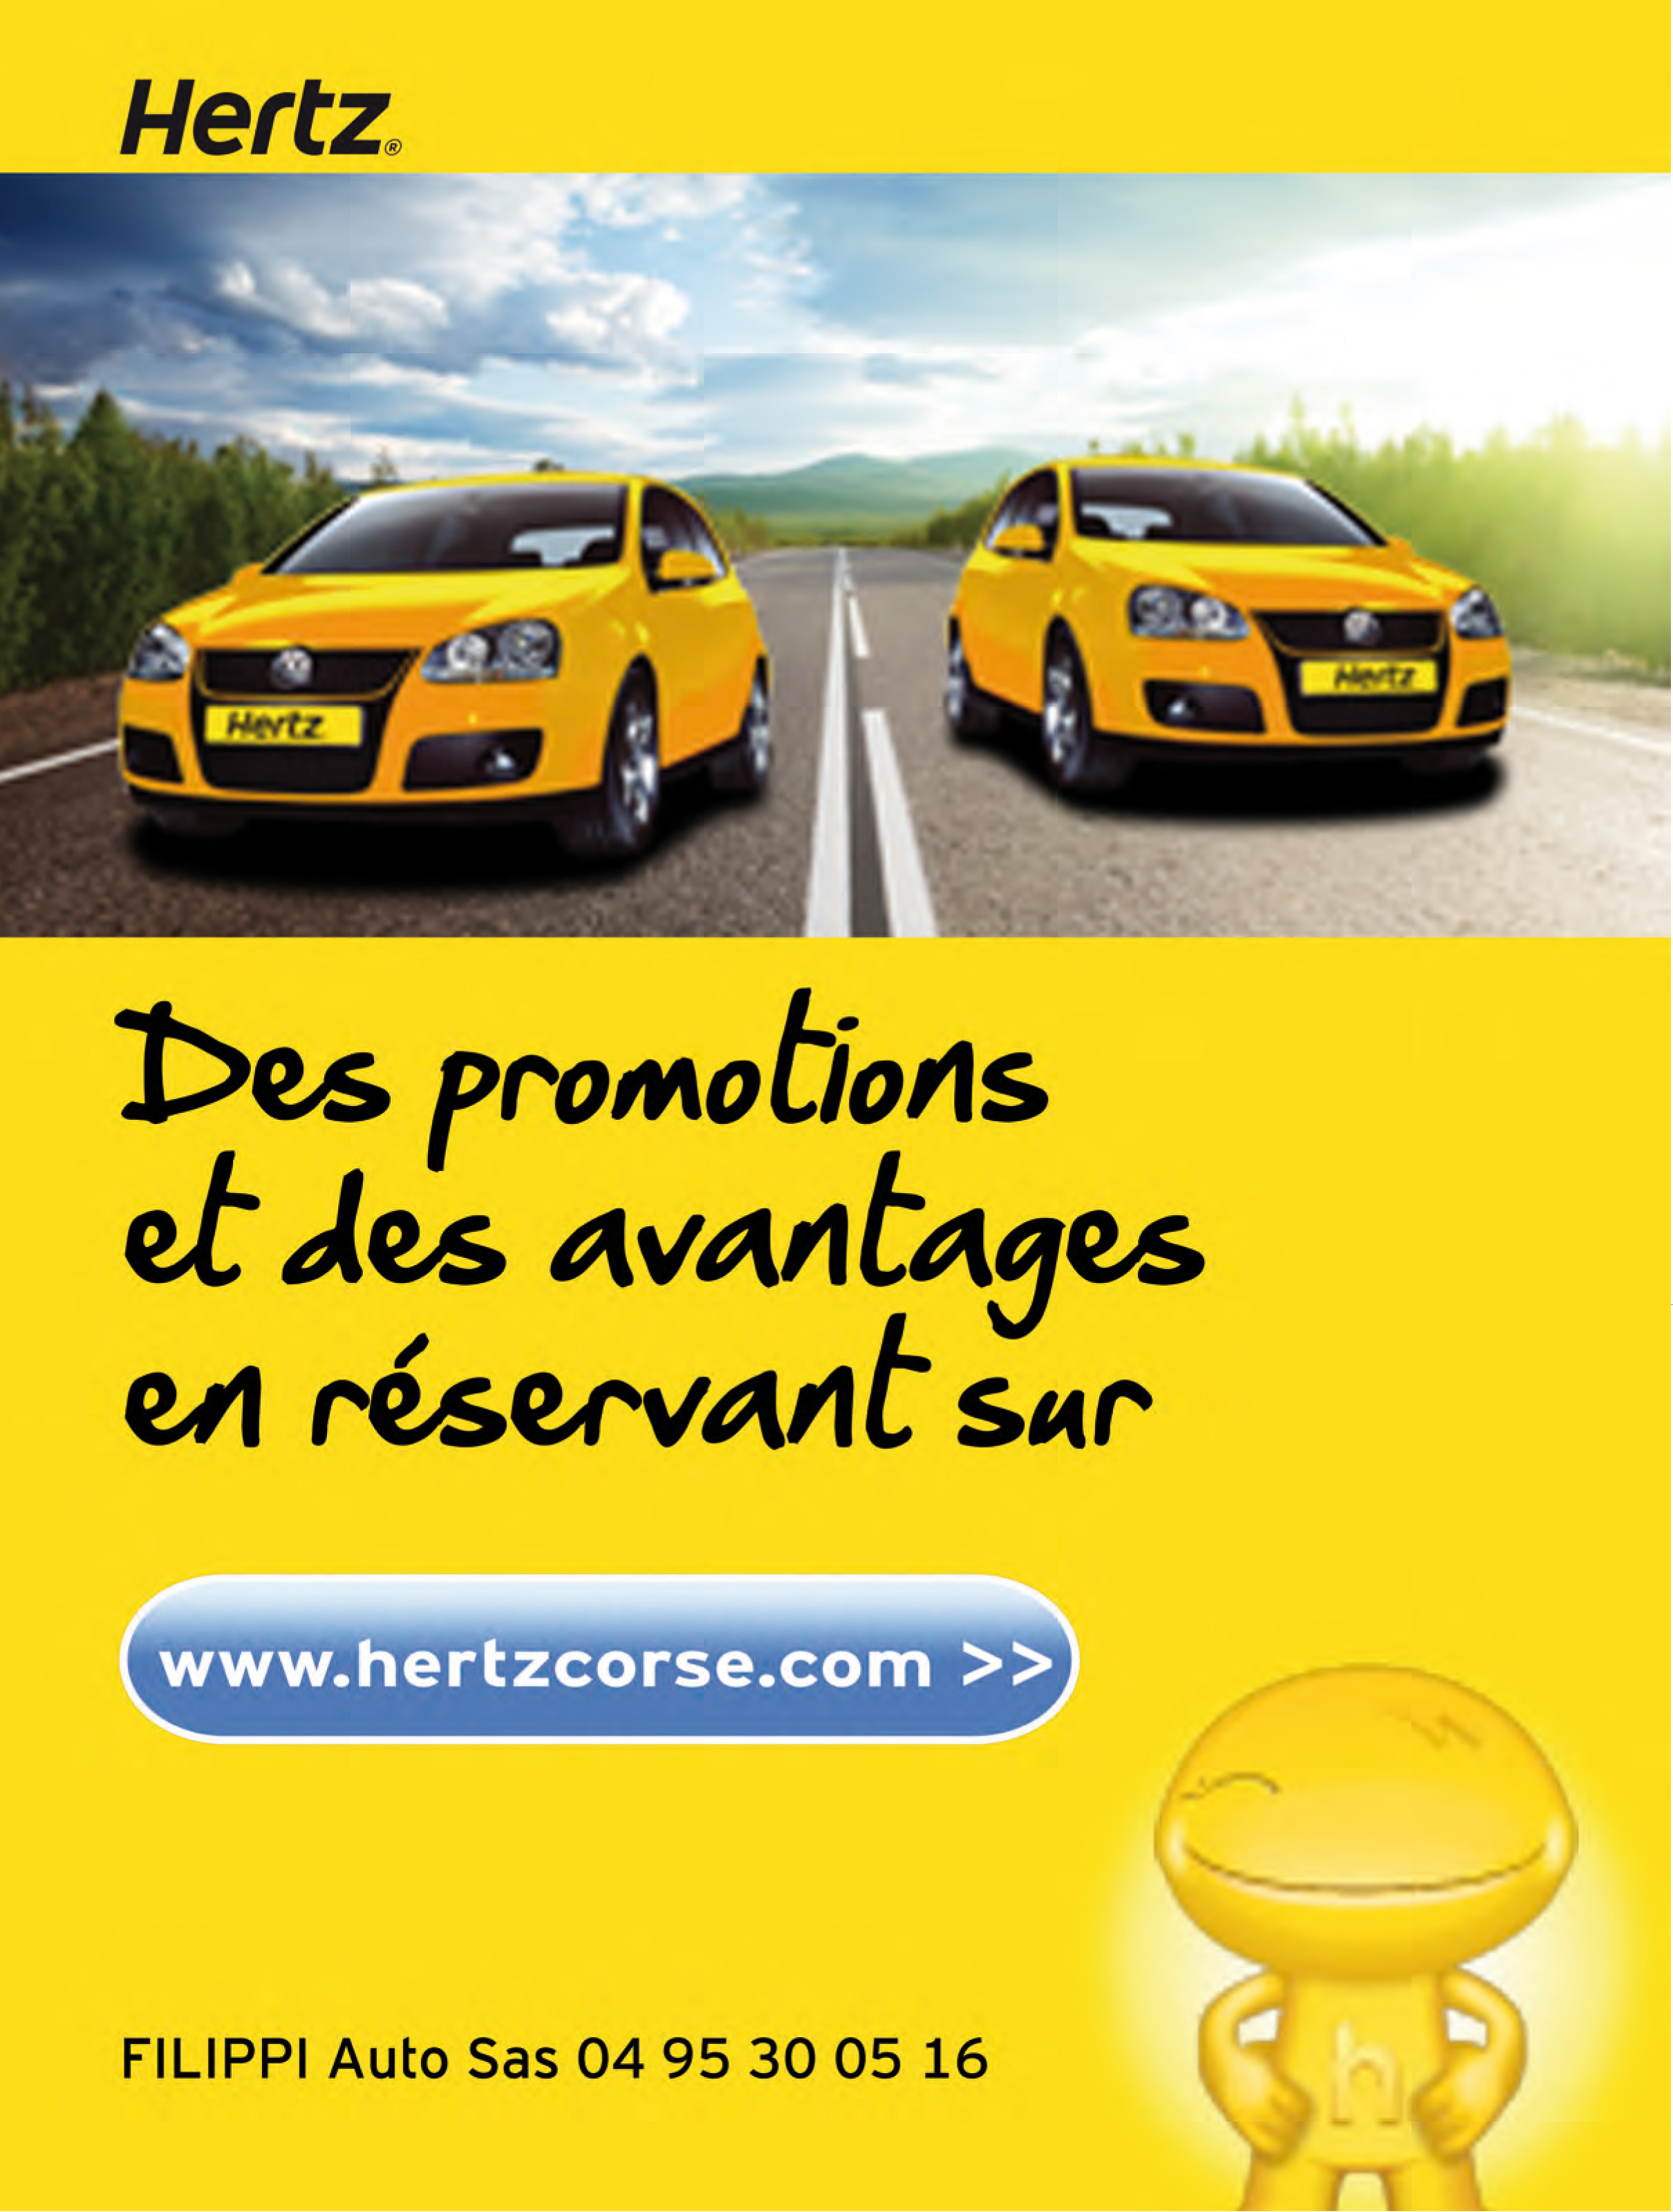 hertz location voiture bastia poretta. Black Bedroom Furniture Sets. Home Design Ideas